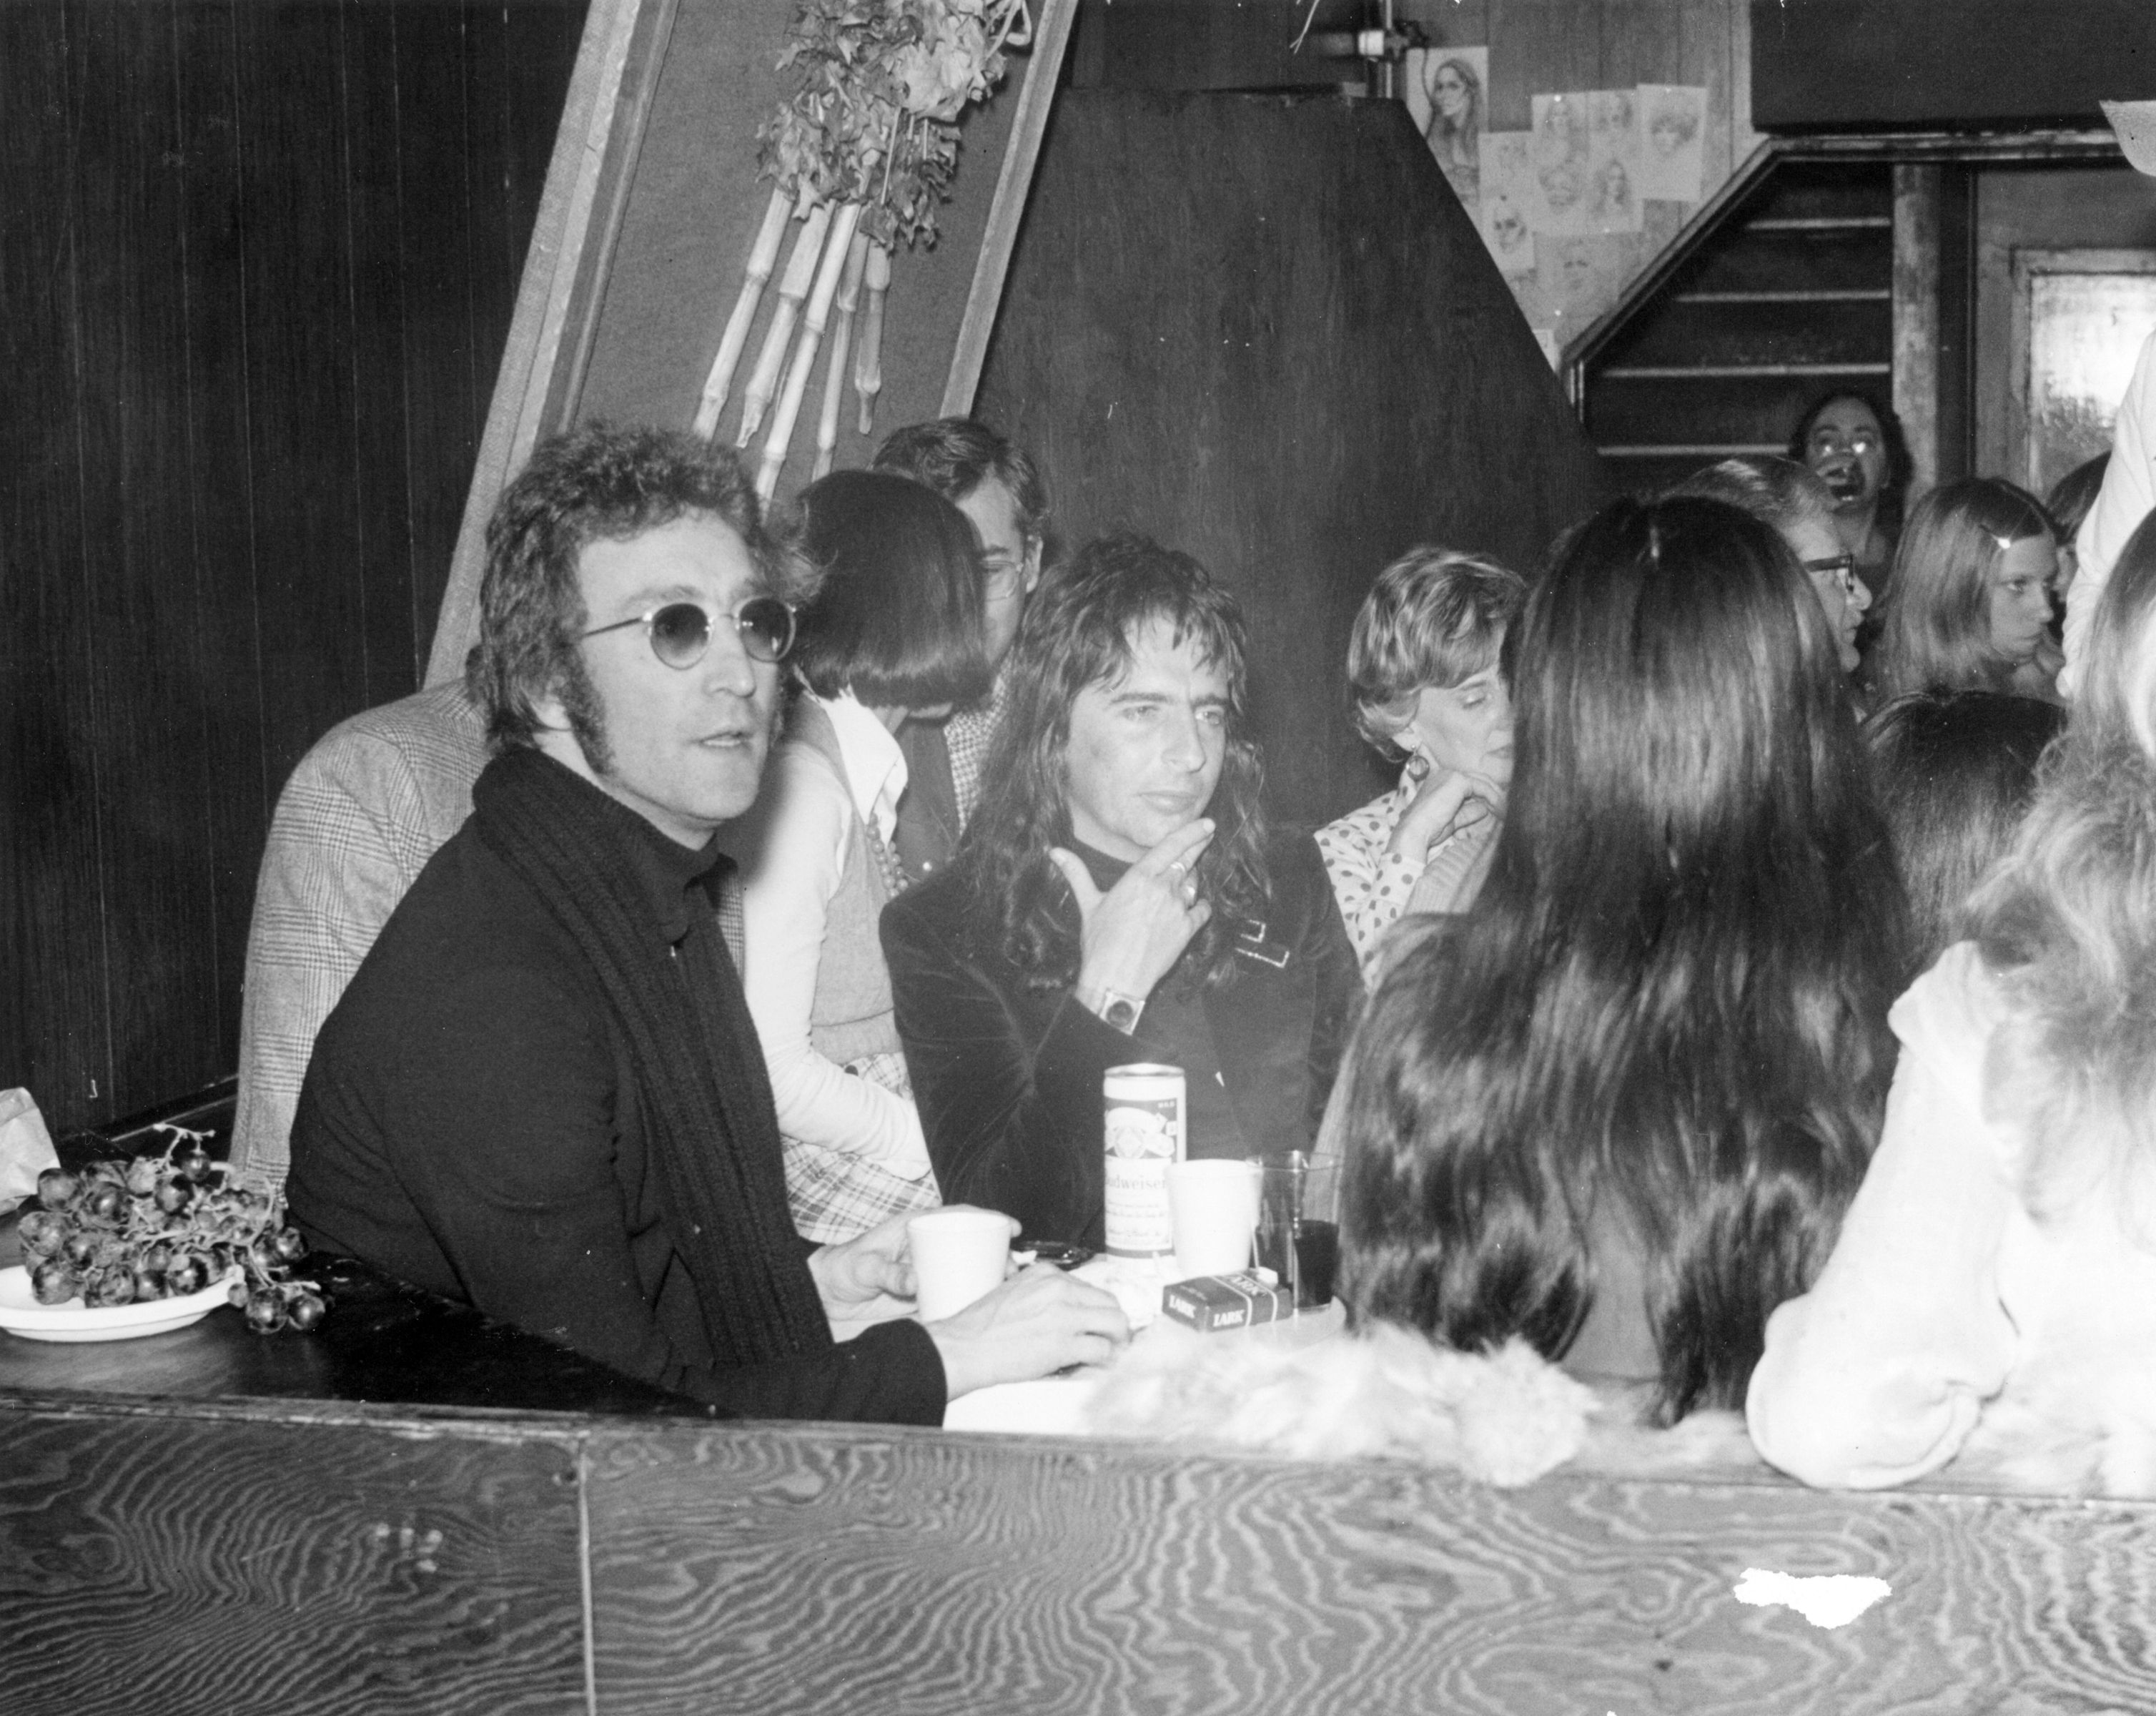 John Lennon and Alice Cooper at the Troubadour in 1973